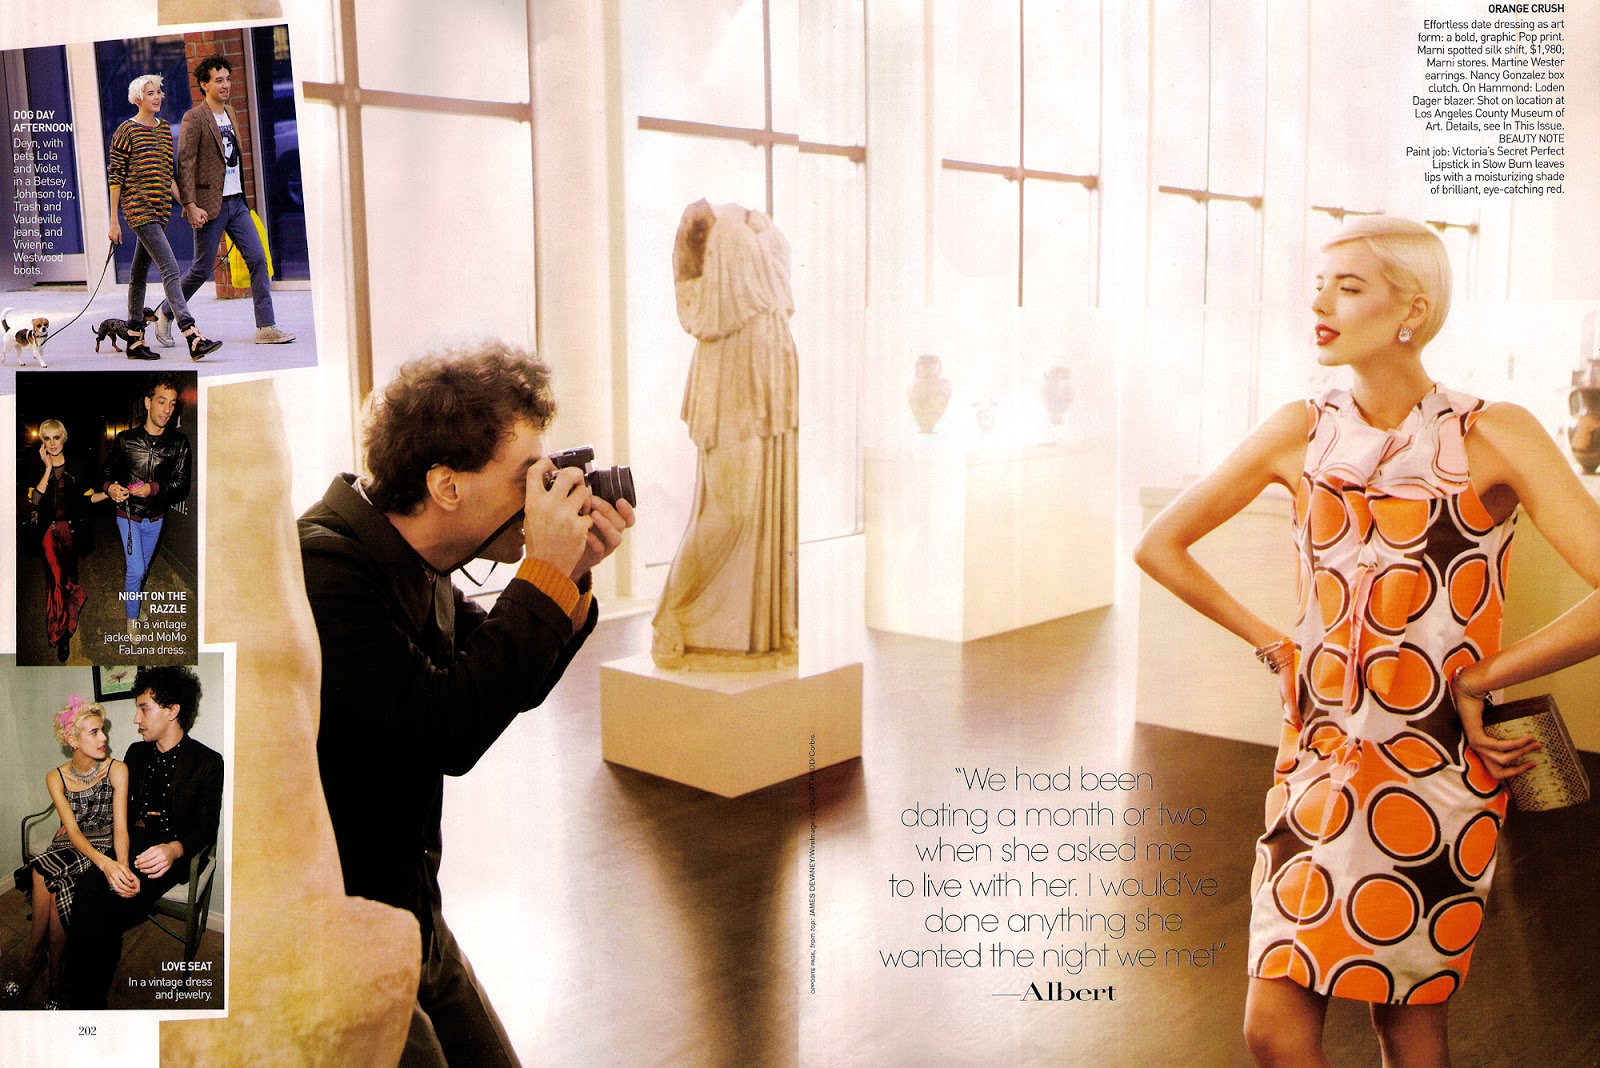 Agyness Deyn & Albert Hammond in Perfect harmony / Vogue US February 2009 (photography: Mikael Jansson) via fashioned by love british fashion blog